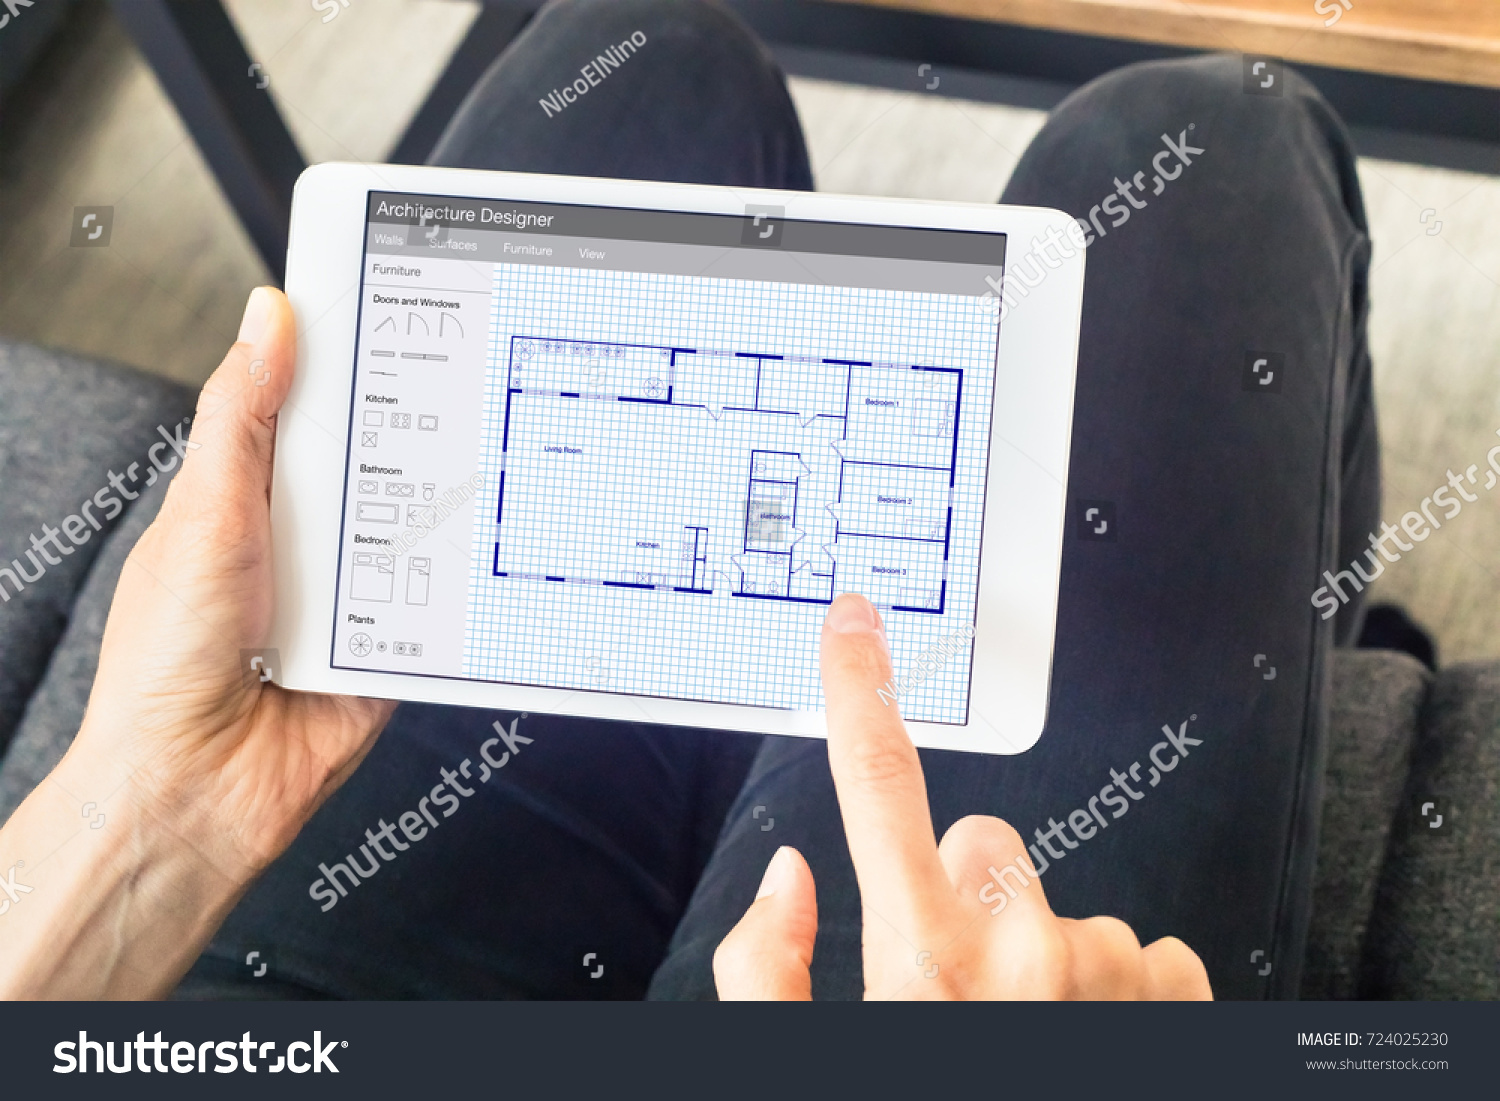 Person Sketching Home Design Architecture Project Stock Photo ...